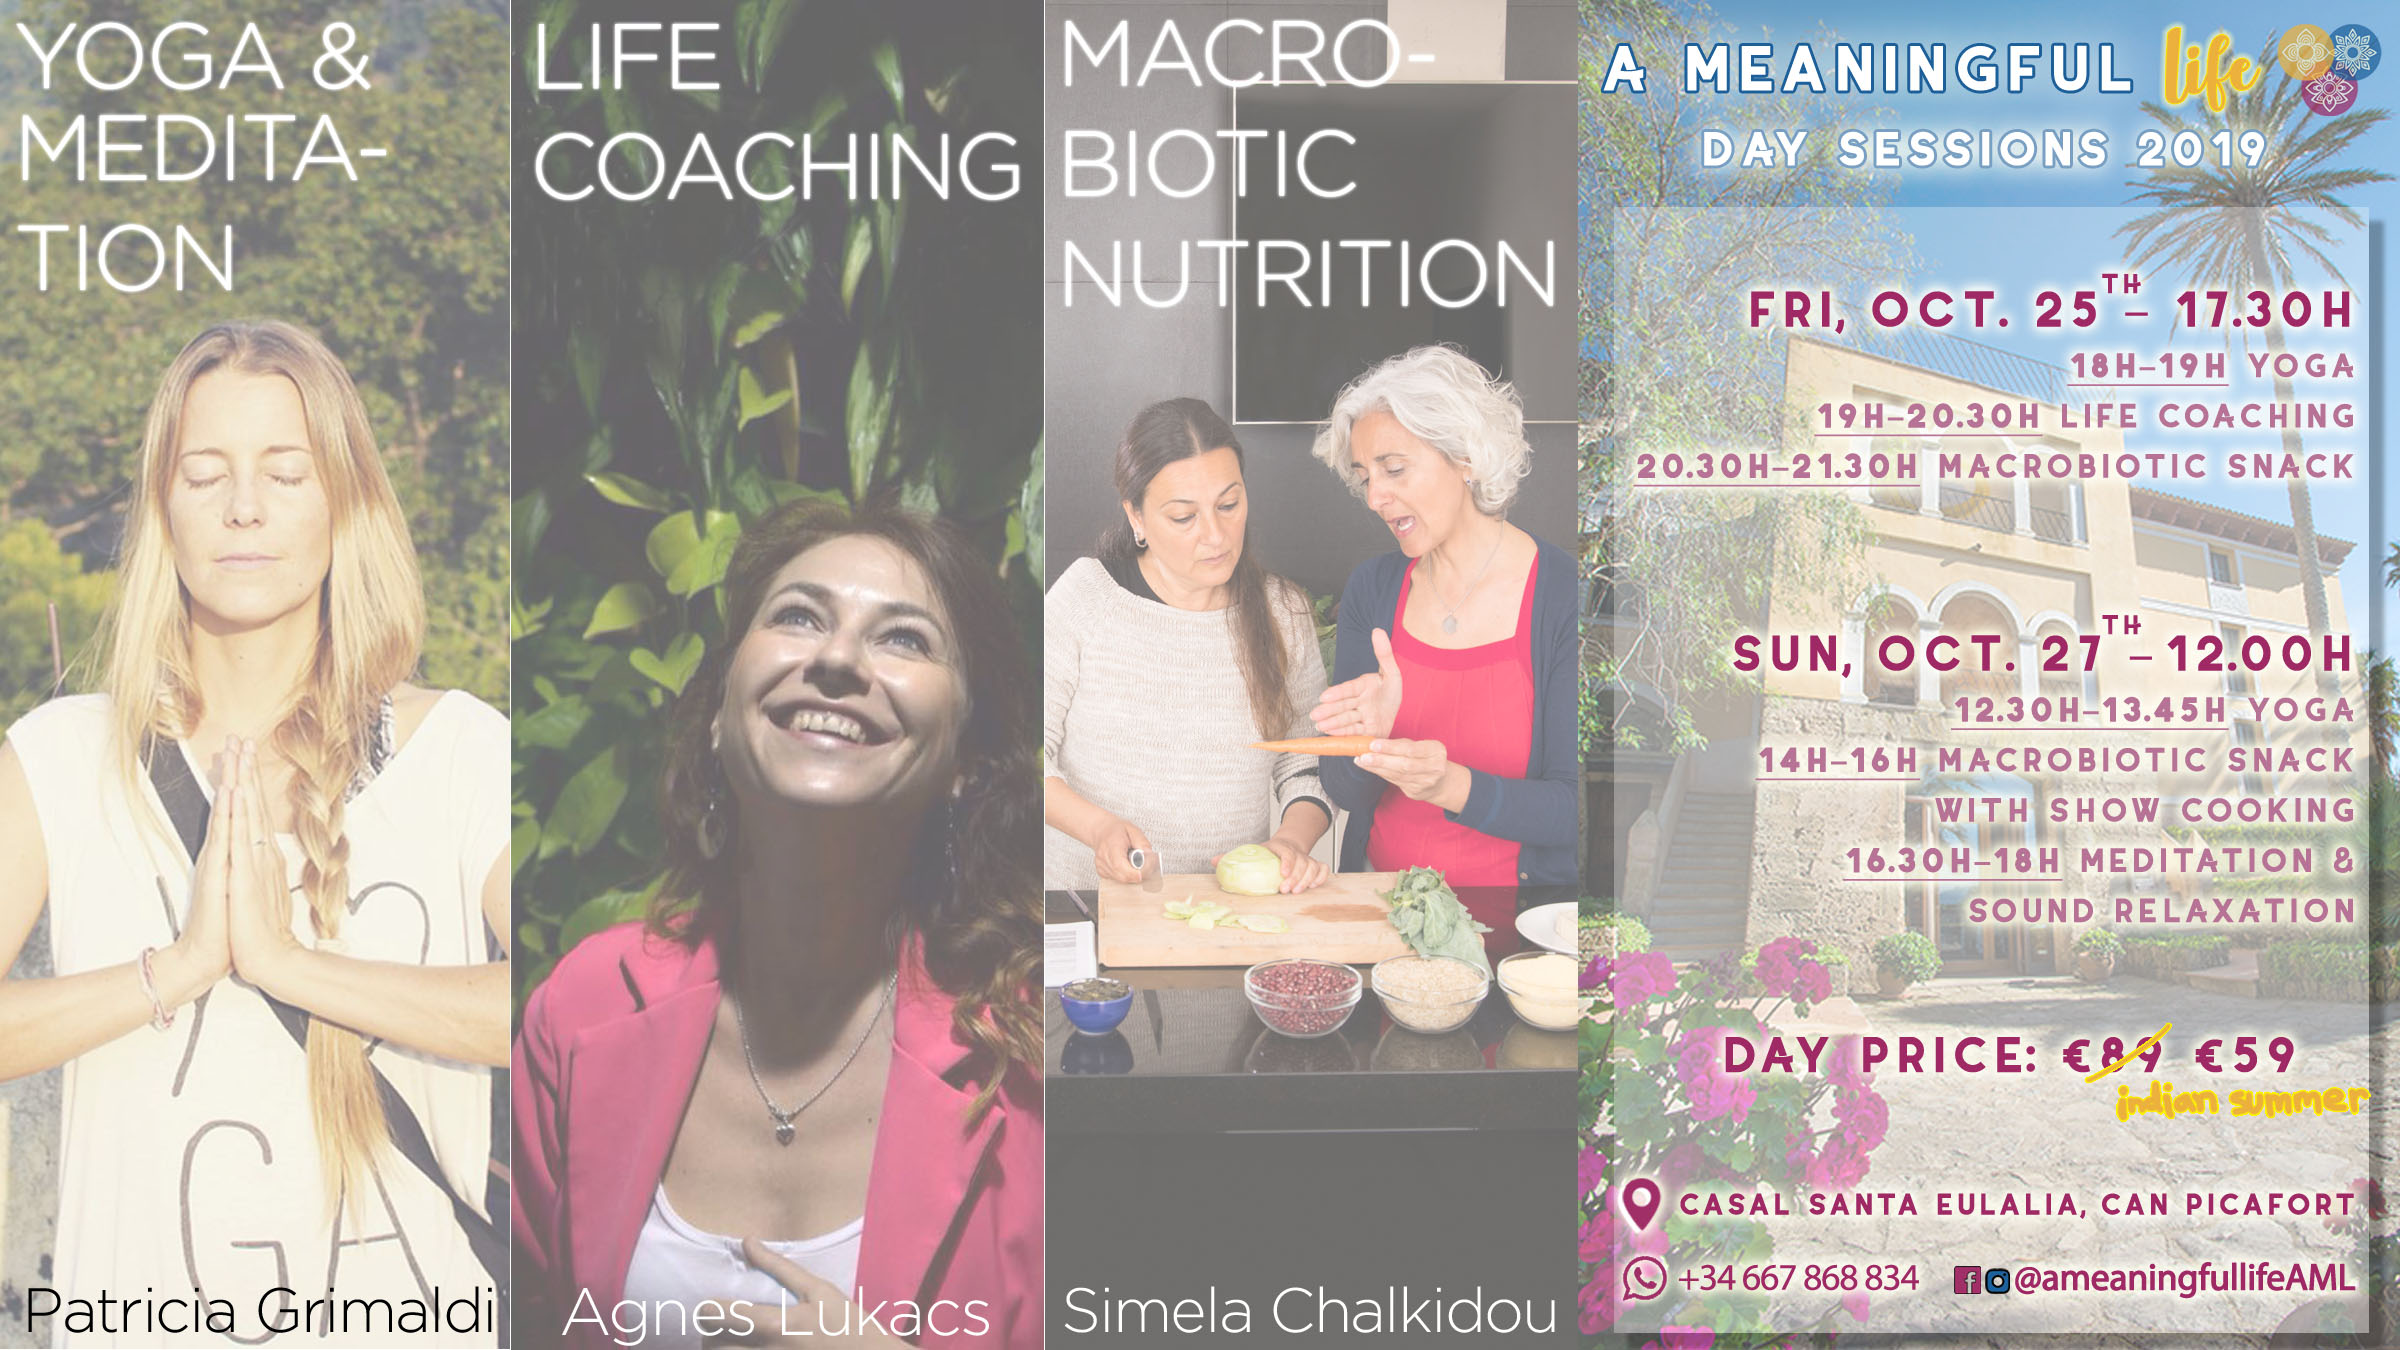 A Meaningful Life Day Sessions